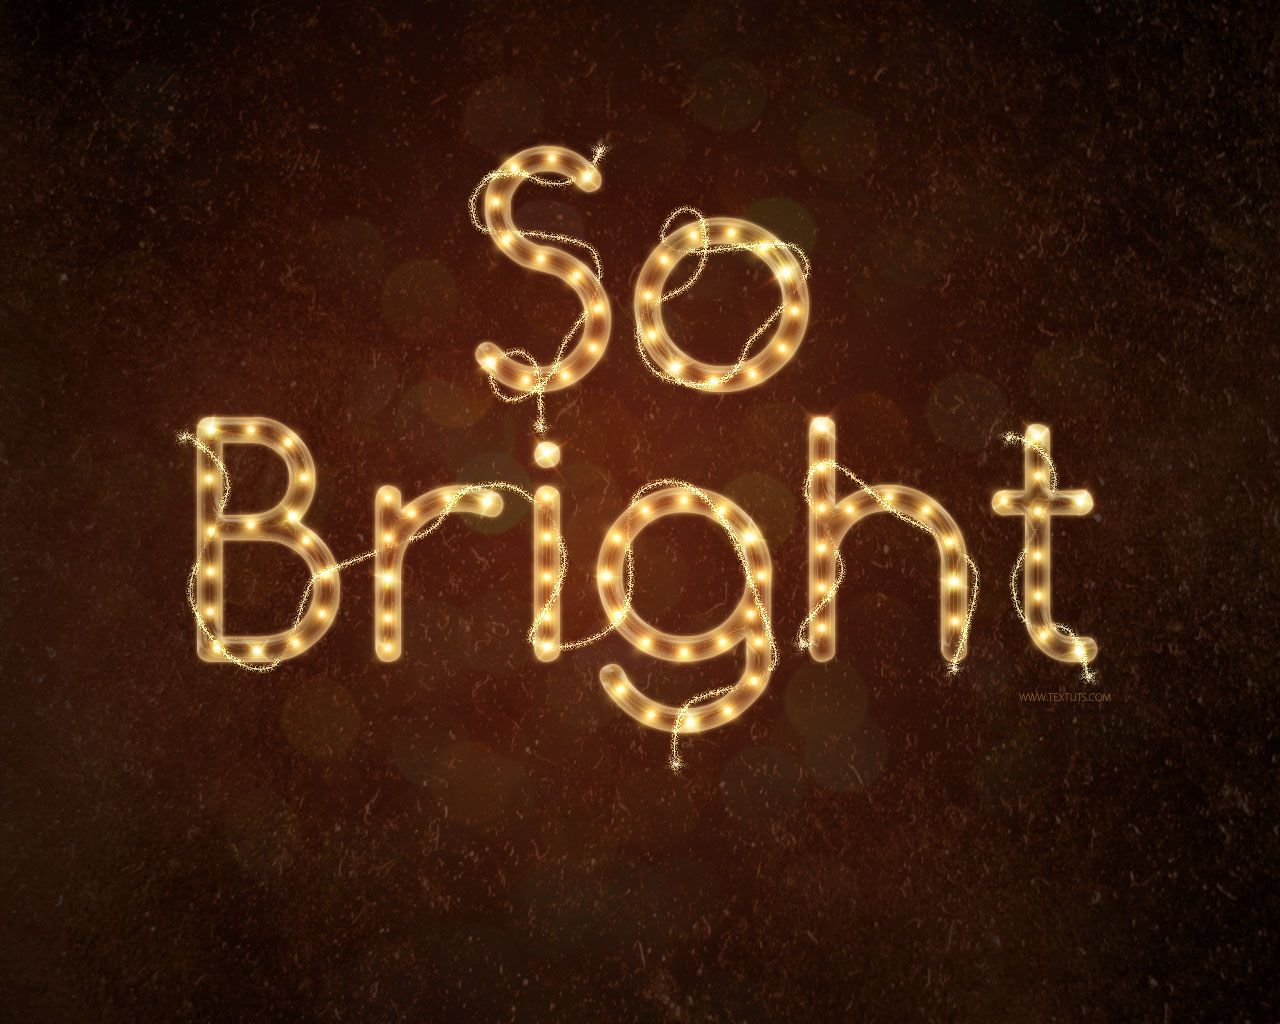 Bright rope light text effect graphicsphotoshop pinterest bright rope light text effect in 35 new photoshop text effect tutorials baditri Images